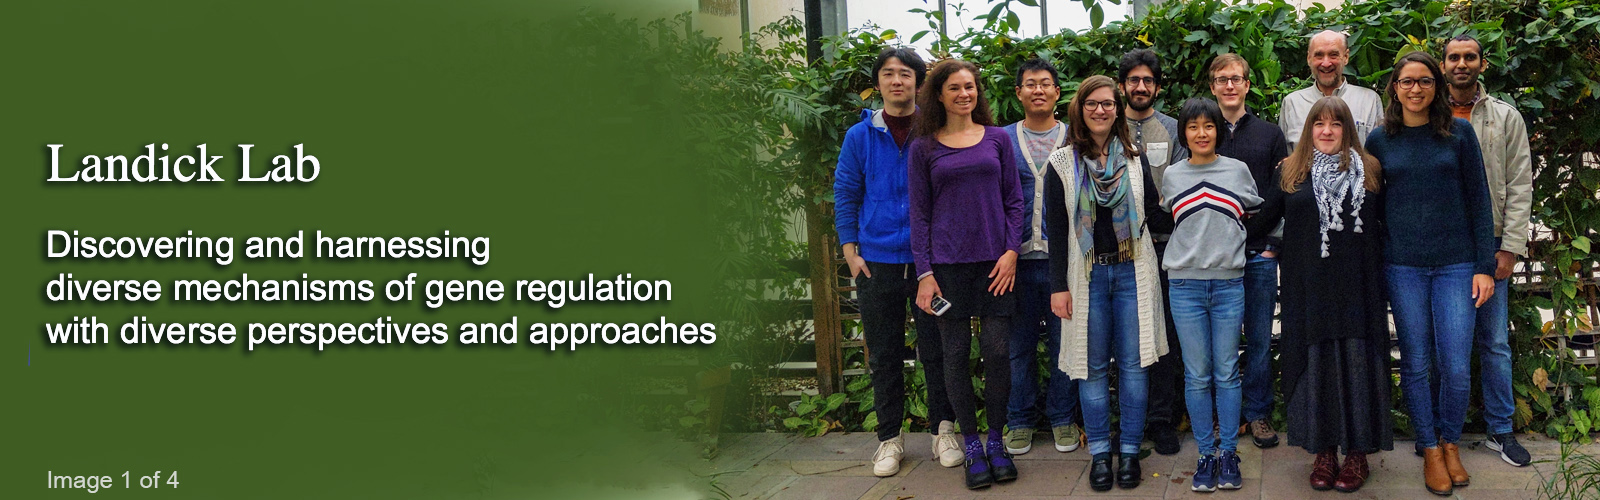 header with Landick Lab members in a greenhouse